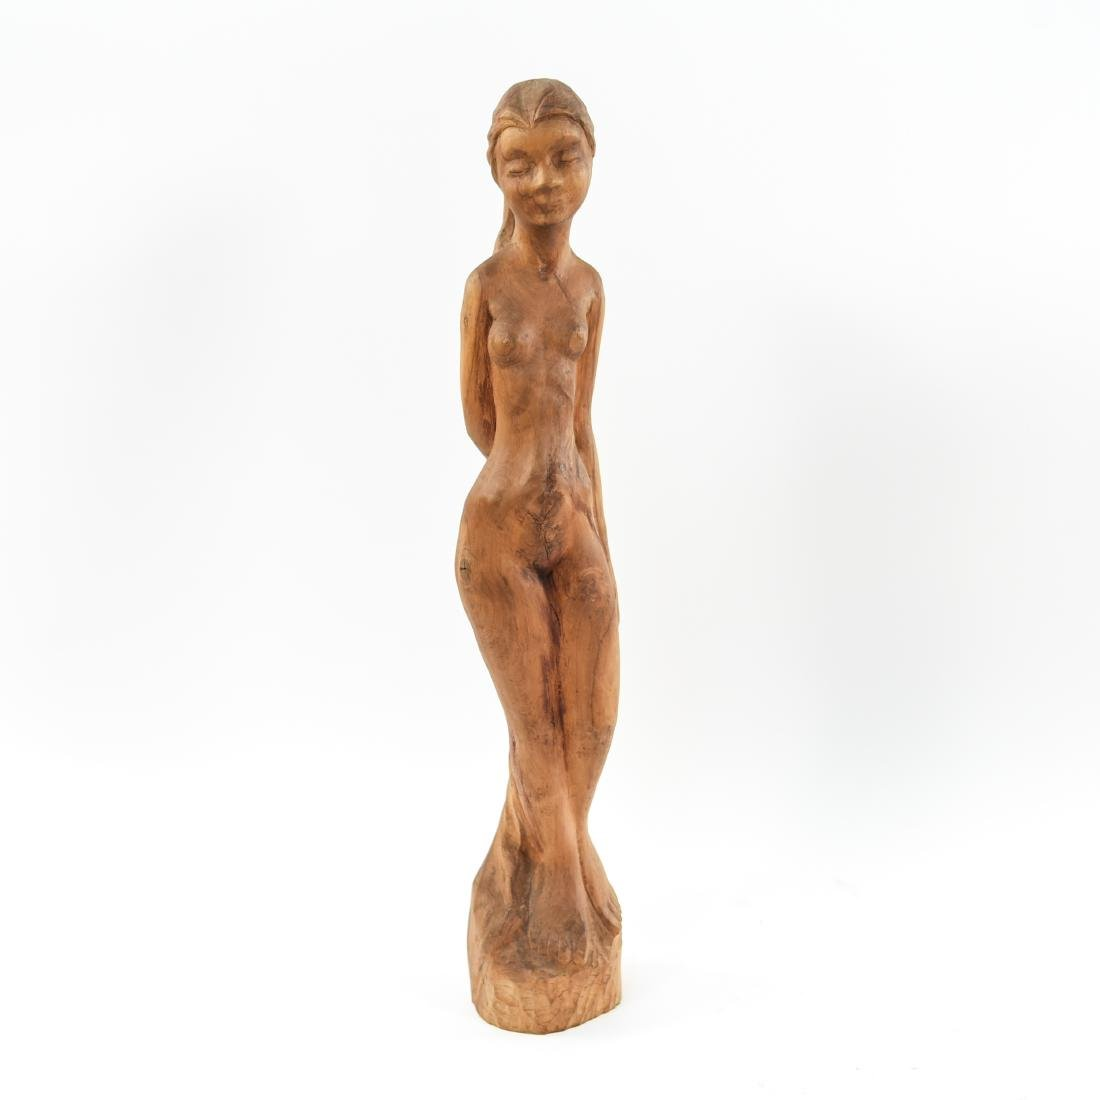 CARVED WOOD NUDE SCULPTURE